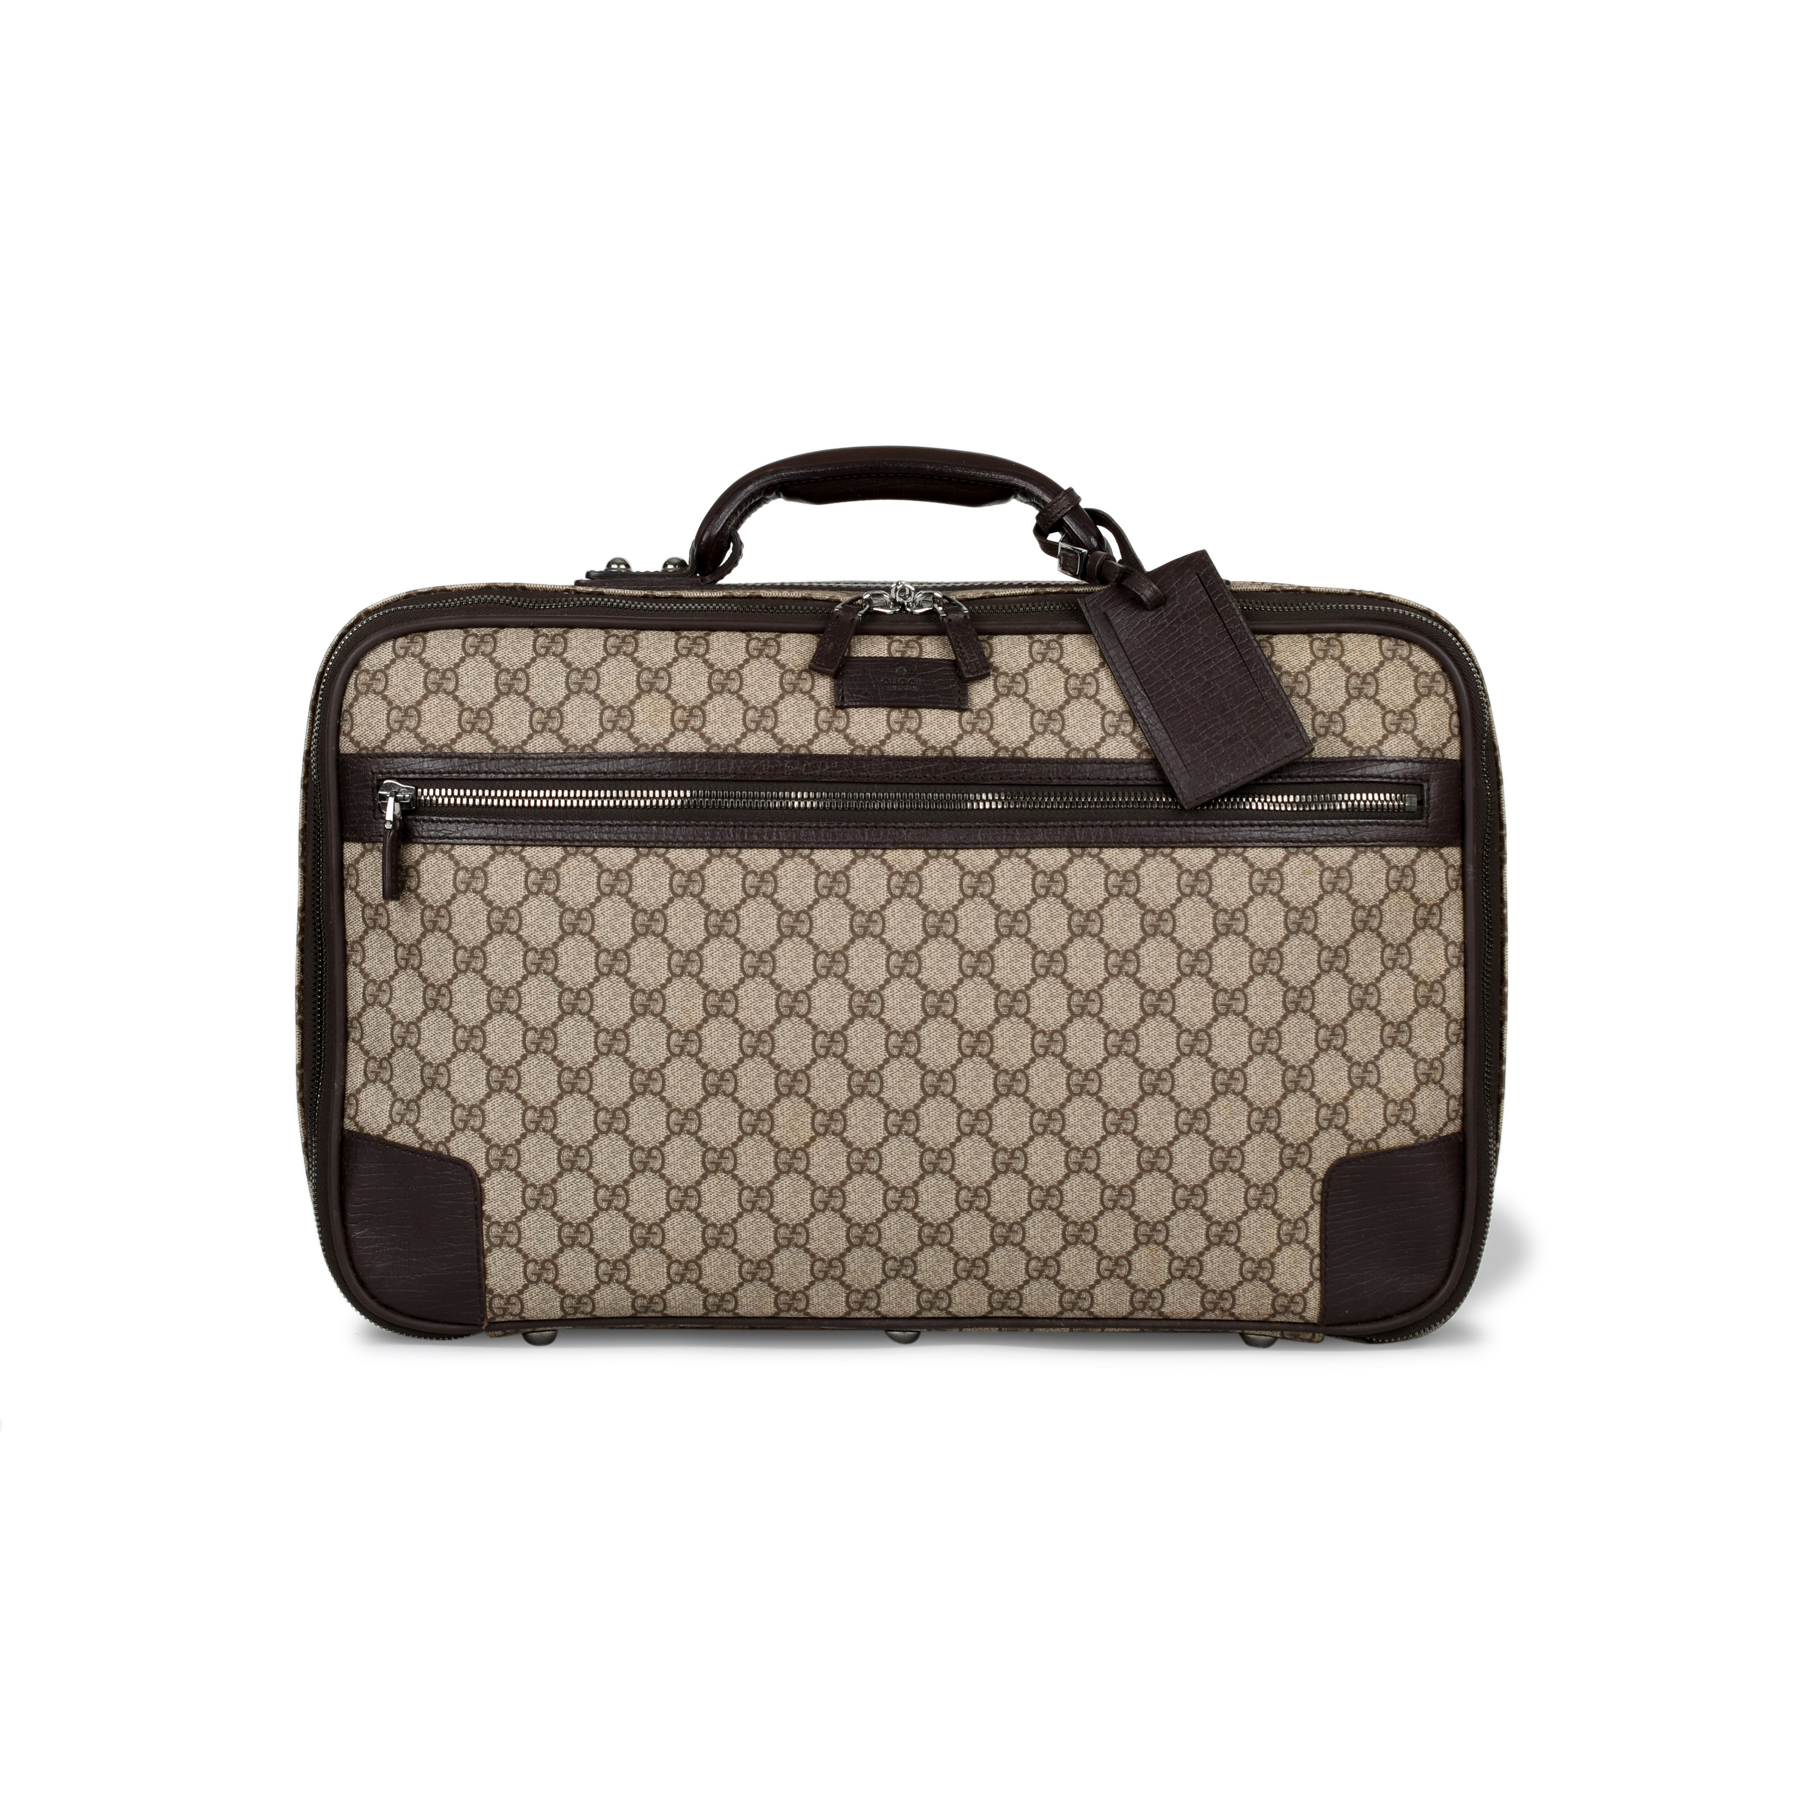 c0277fa47 Authentic Vintage Gucci Dual Ziparound Suitcase (PSS-430-00016) - THE FIFTH  COLLECTION